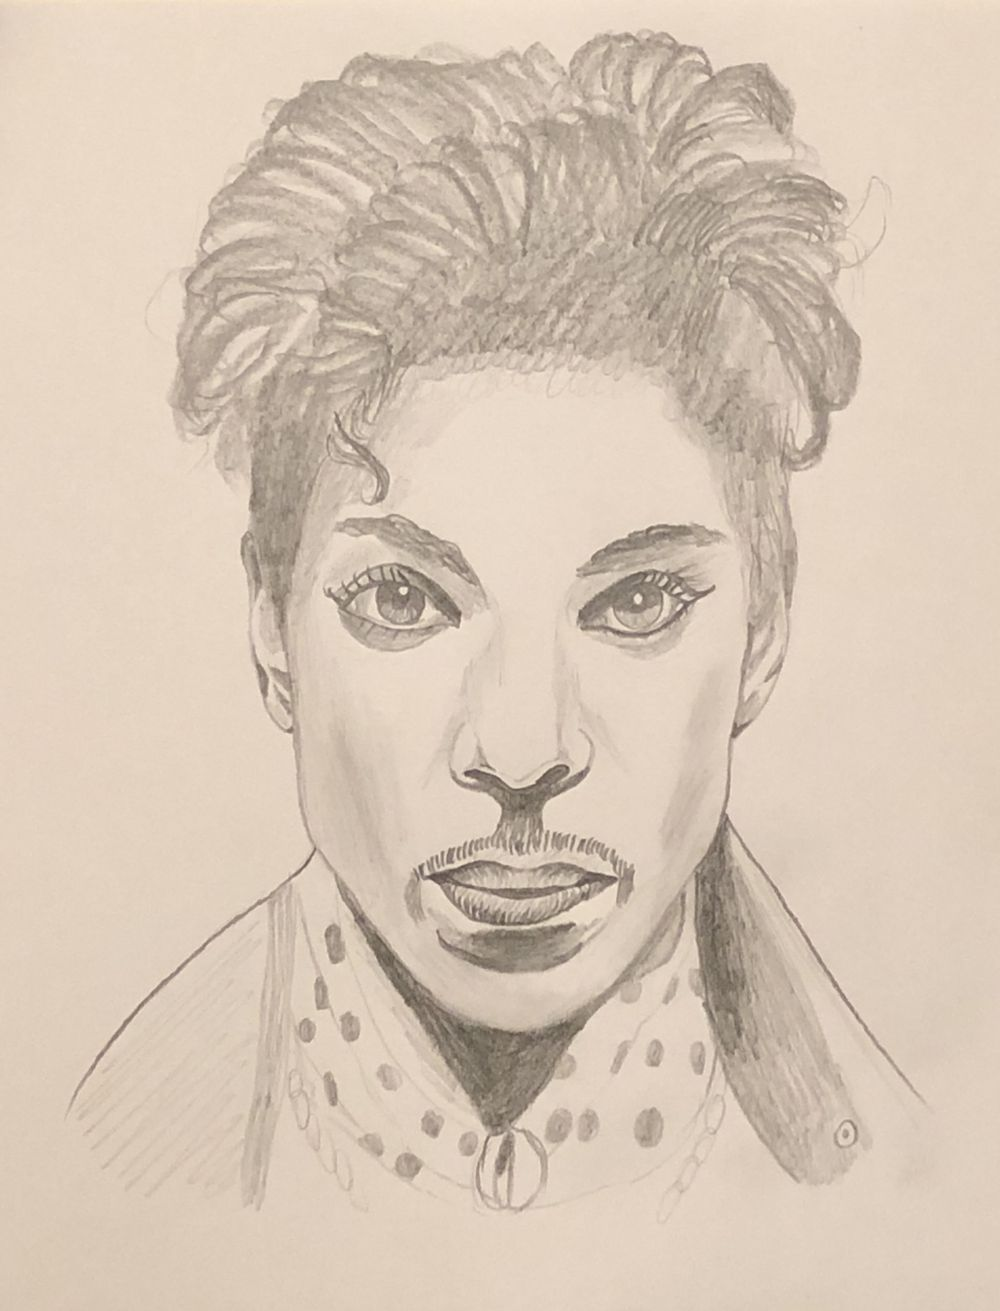 Prince pencil drawing - image 1 - student project